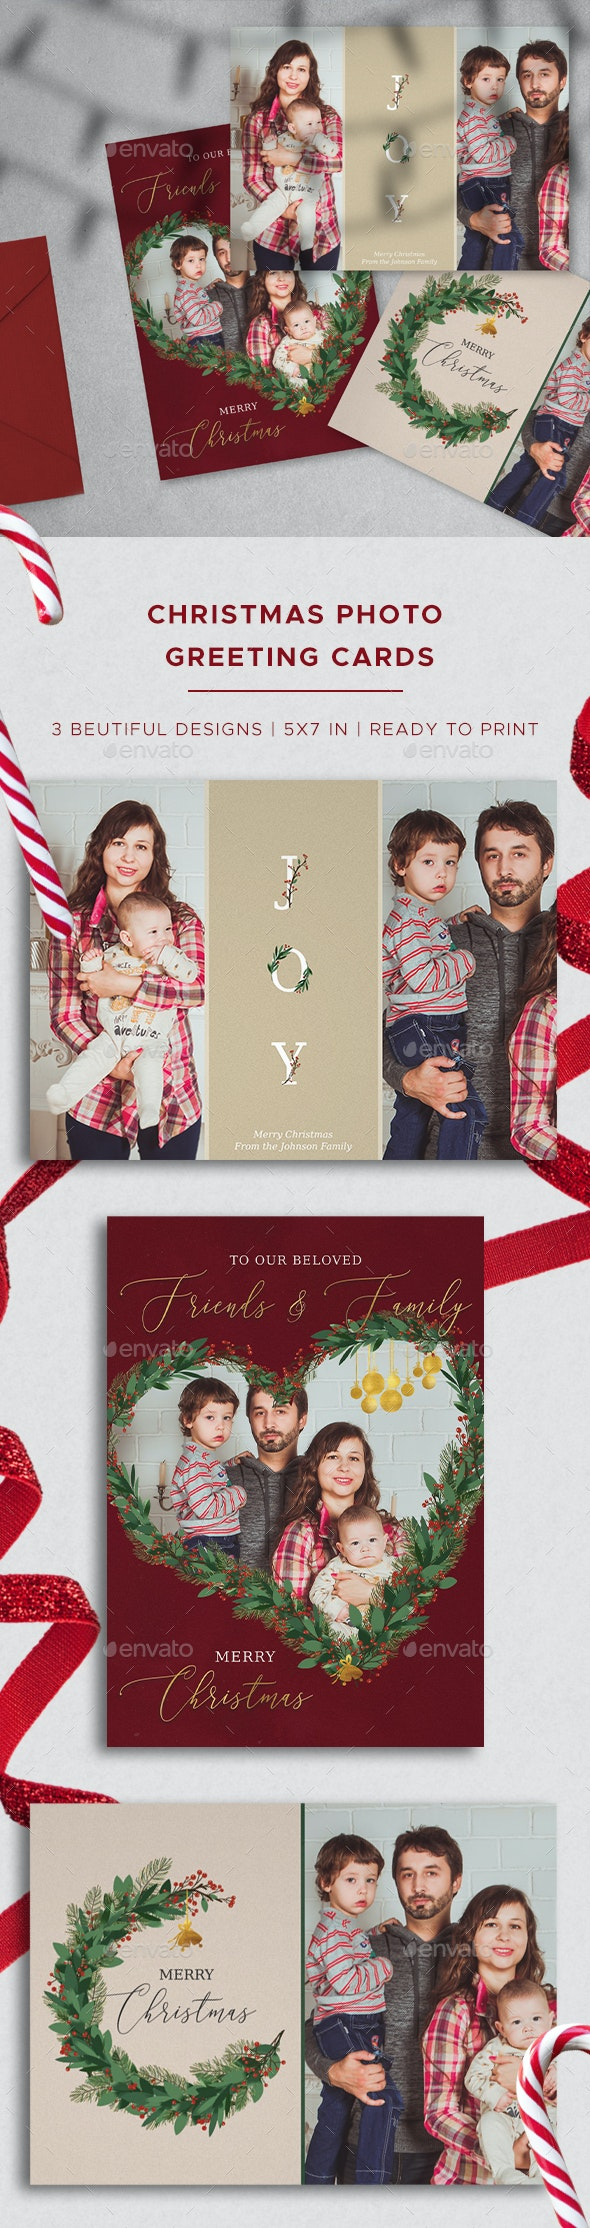 Christmas Photo Greeting Cards - Holiday Greeting Cards